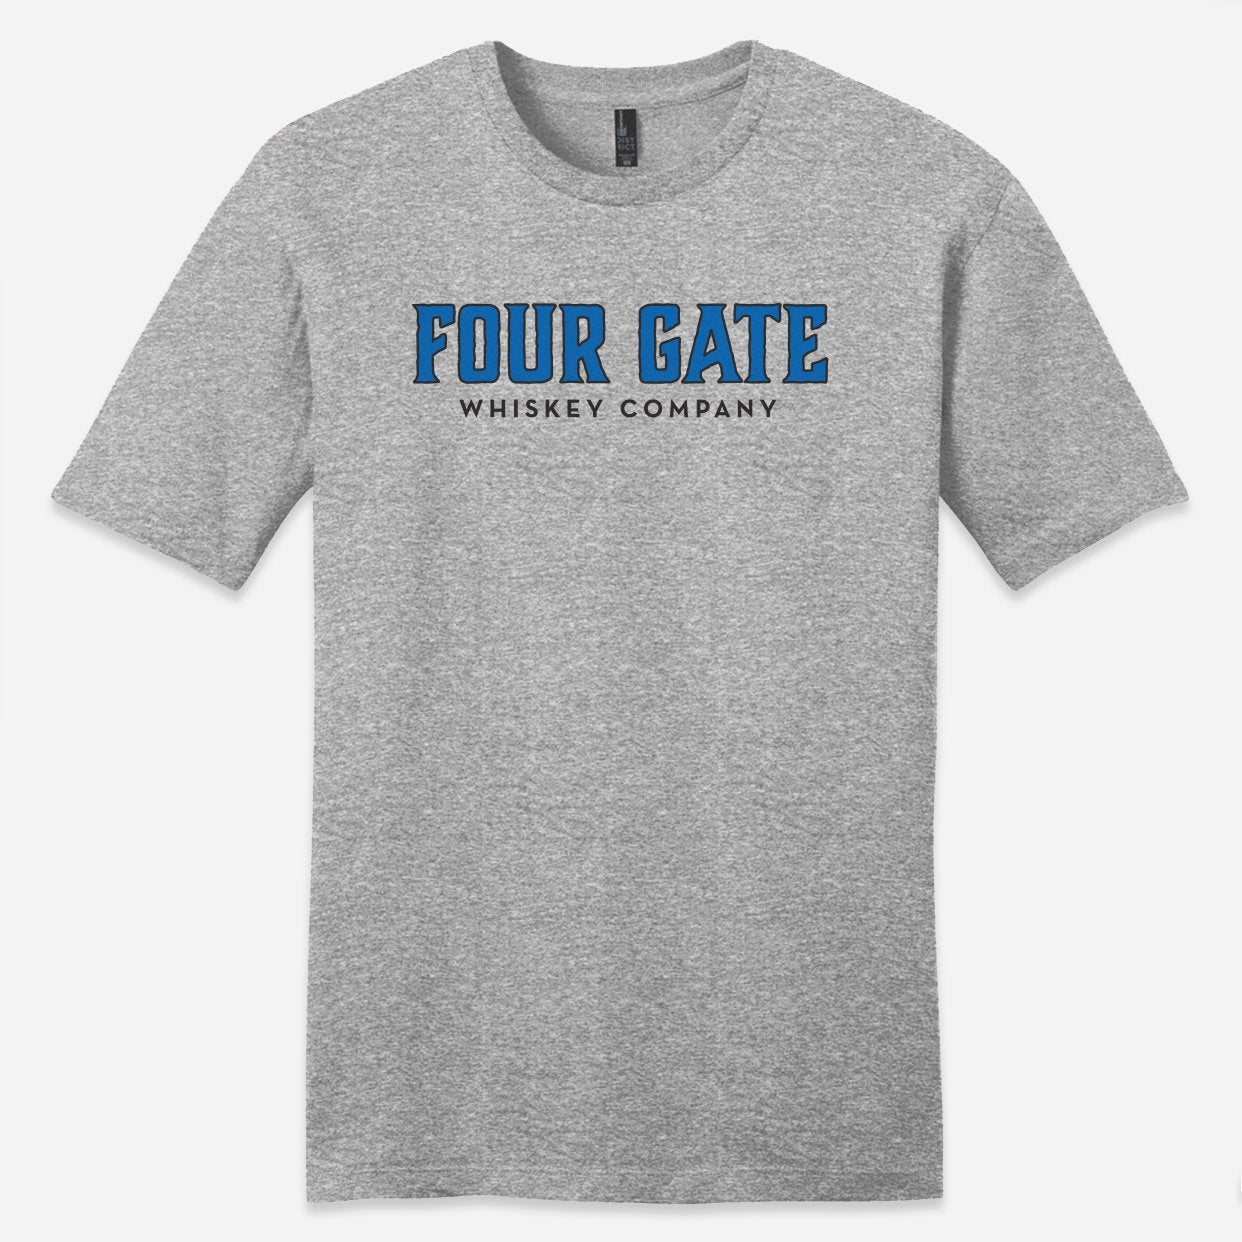 Four Gate Whiskey Company Logo T-Shirt